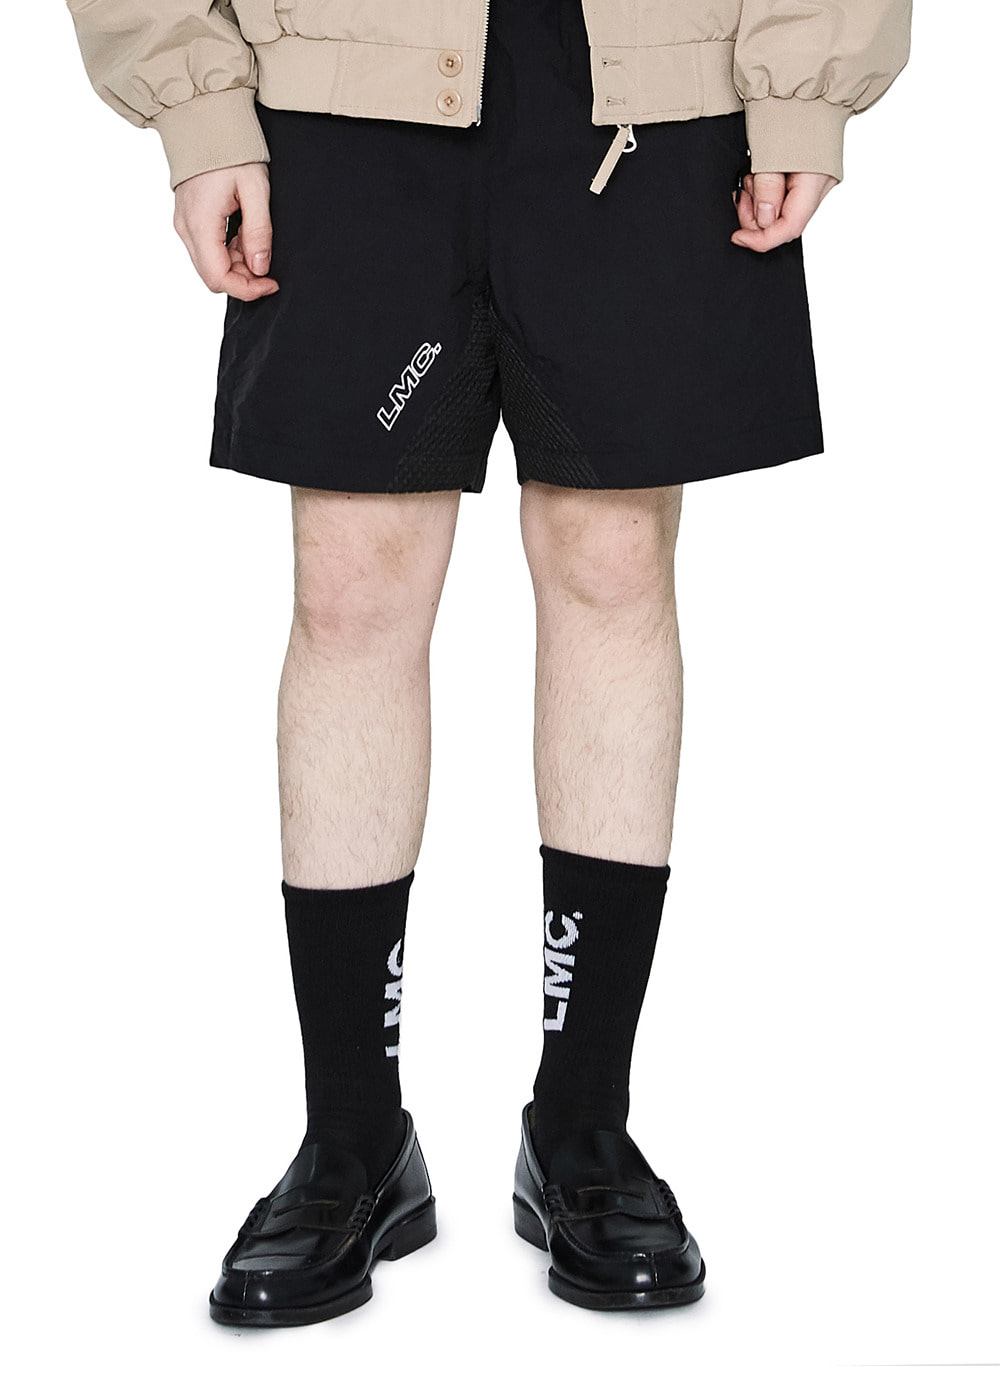 LMC MMWB TRACK SUIT SHORTS black